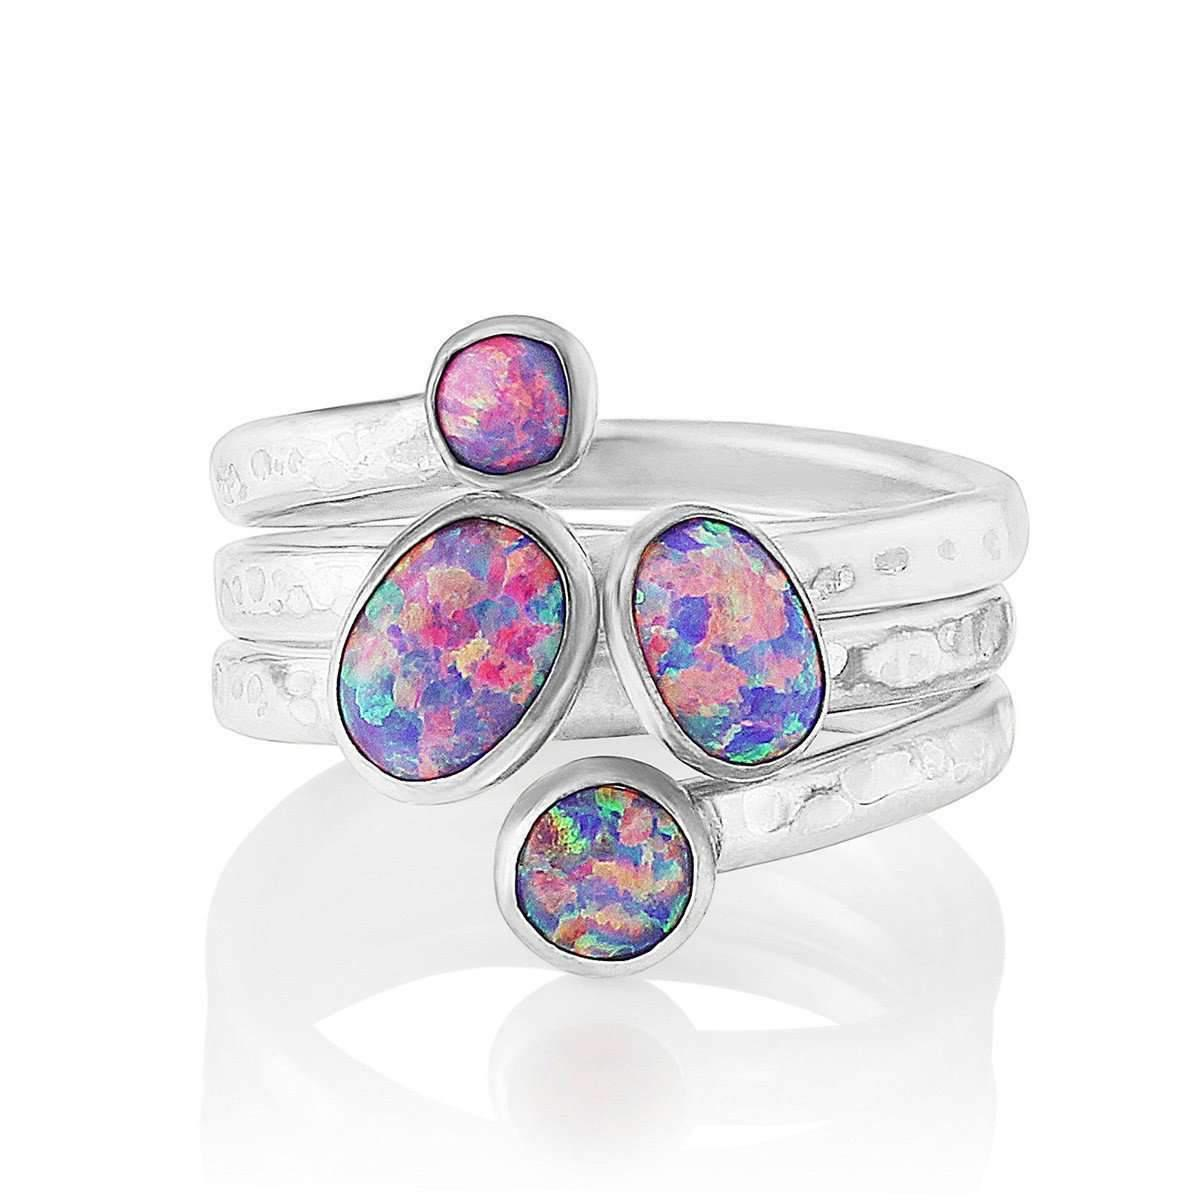 Lavan Sterling Silver & Blue Opal Adjustable Ring - UK U 1/2 - US 10 1/2 - EU 63 1/2 IV3bMQp